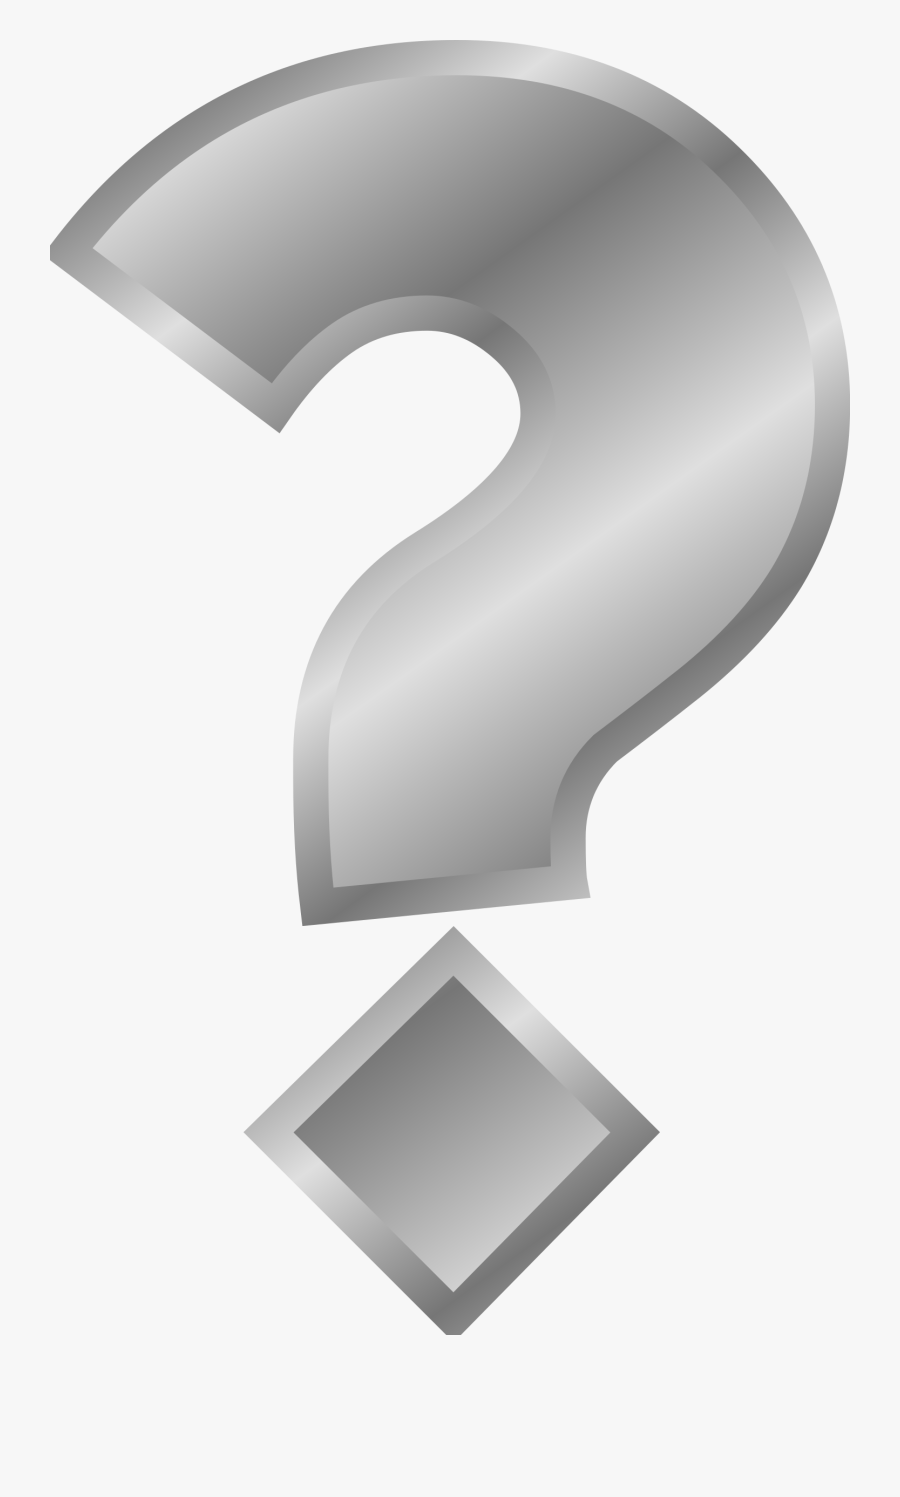 Question Mark Clip Art - Turning Question Mark Gif, Transparent Clipart